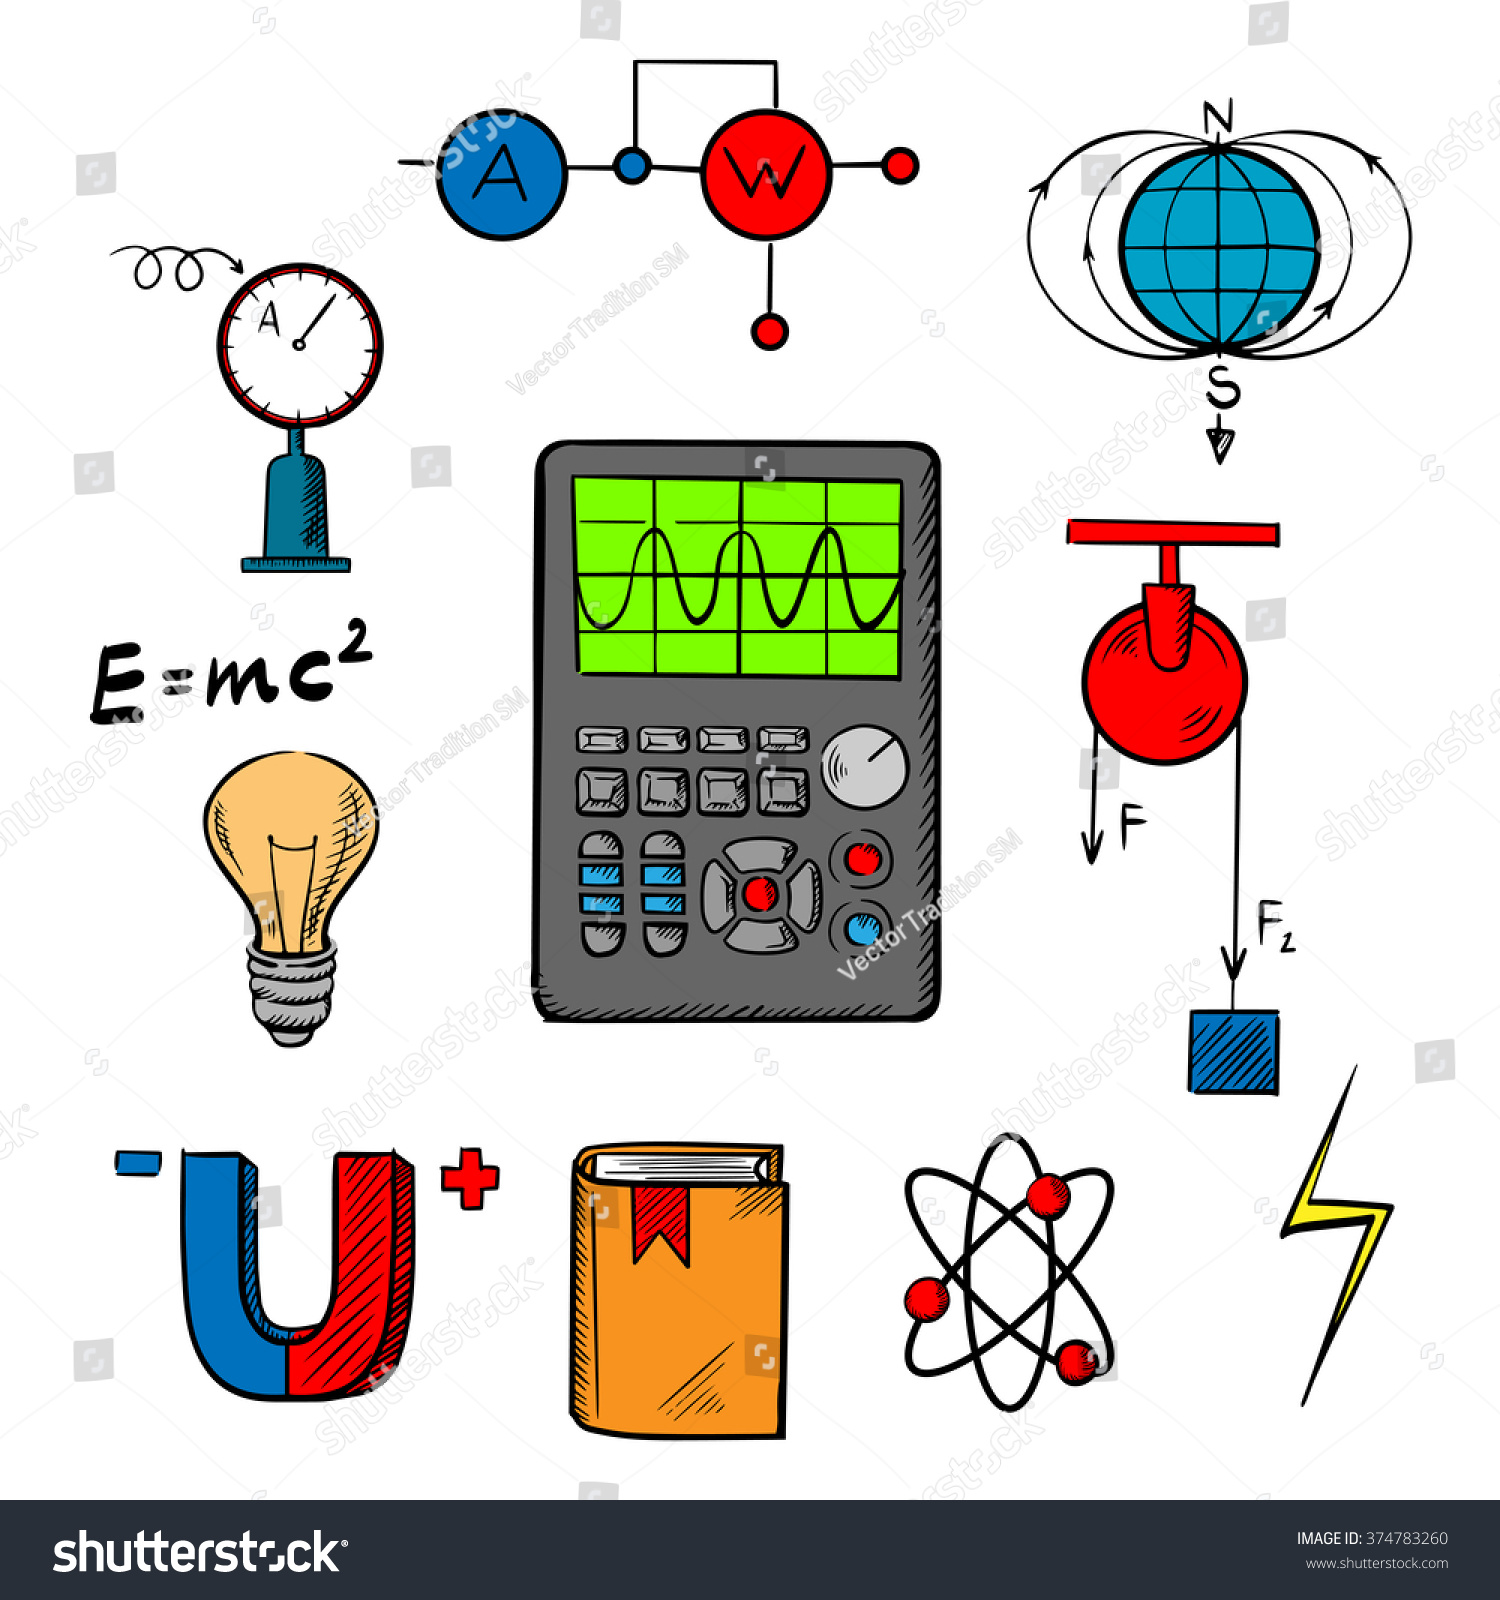 Electricity And Magnetism Vectors